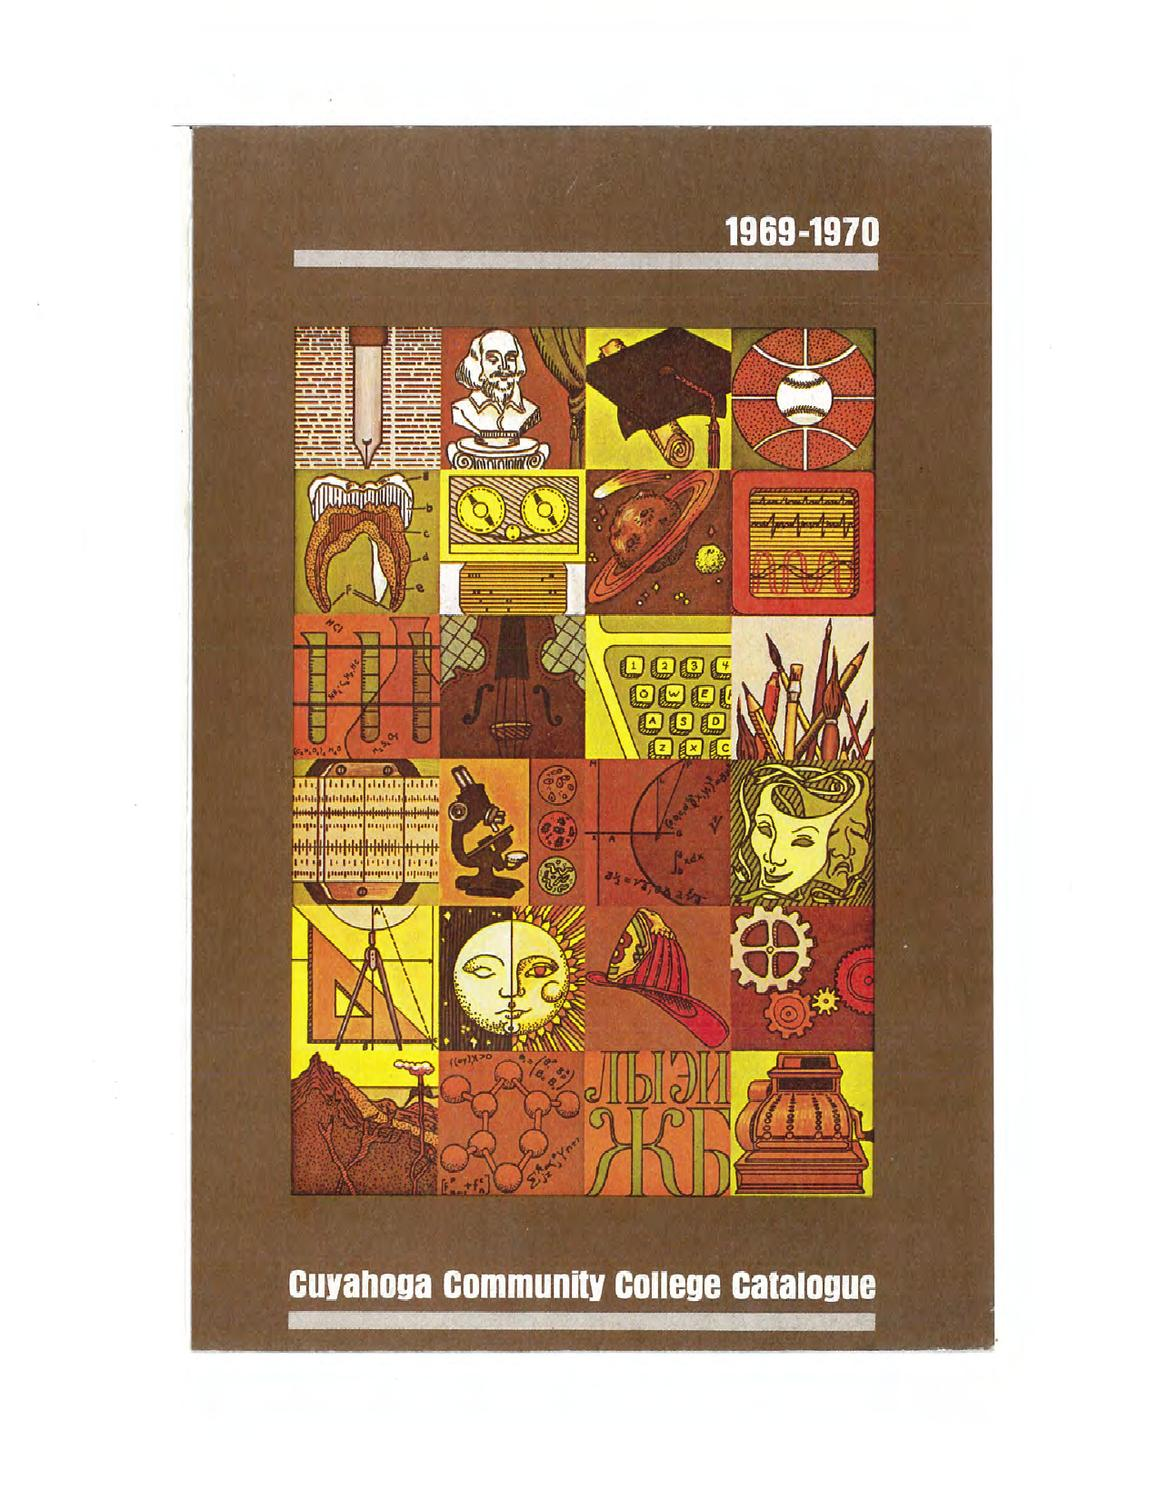 1969 1970 By Cuyahoga Community College Issuu Electrical Circuitselectrical Circuits Uc Davis Mathematics New